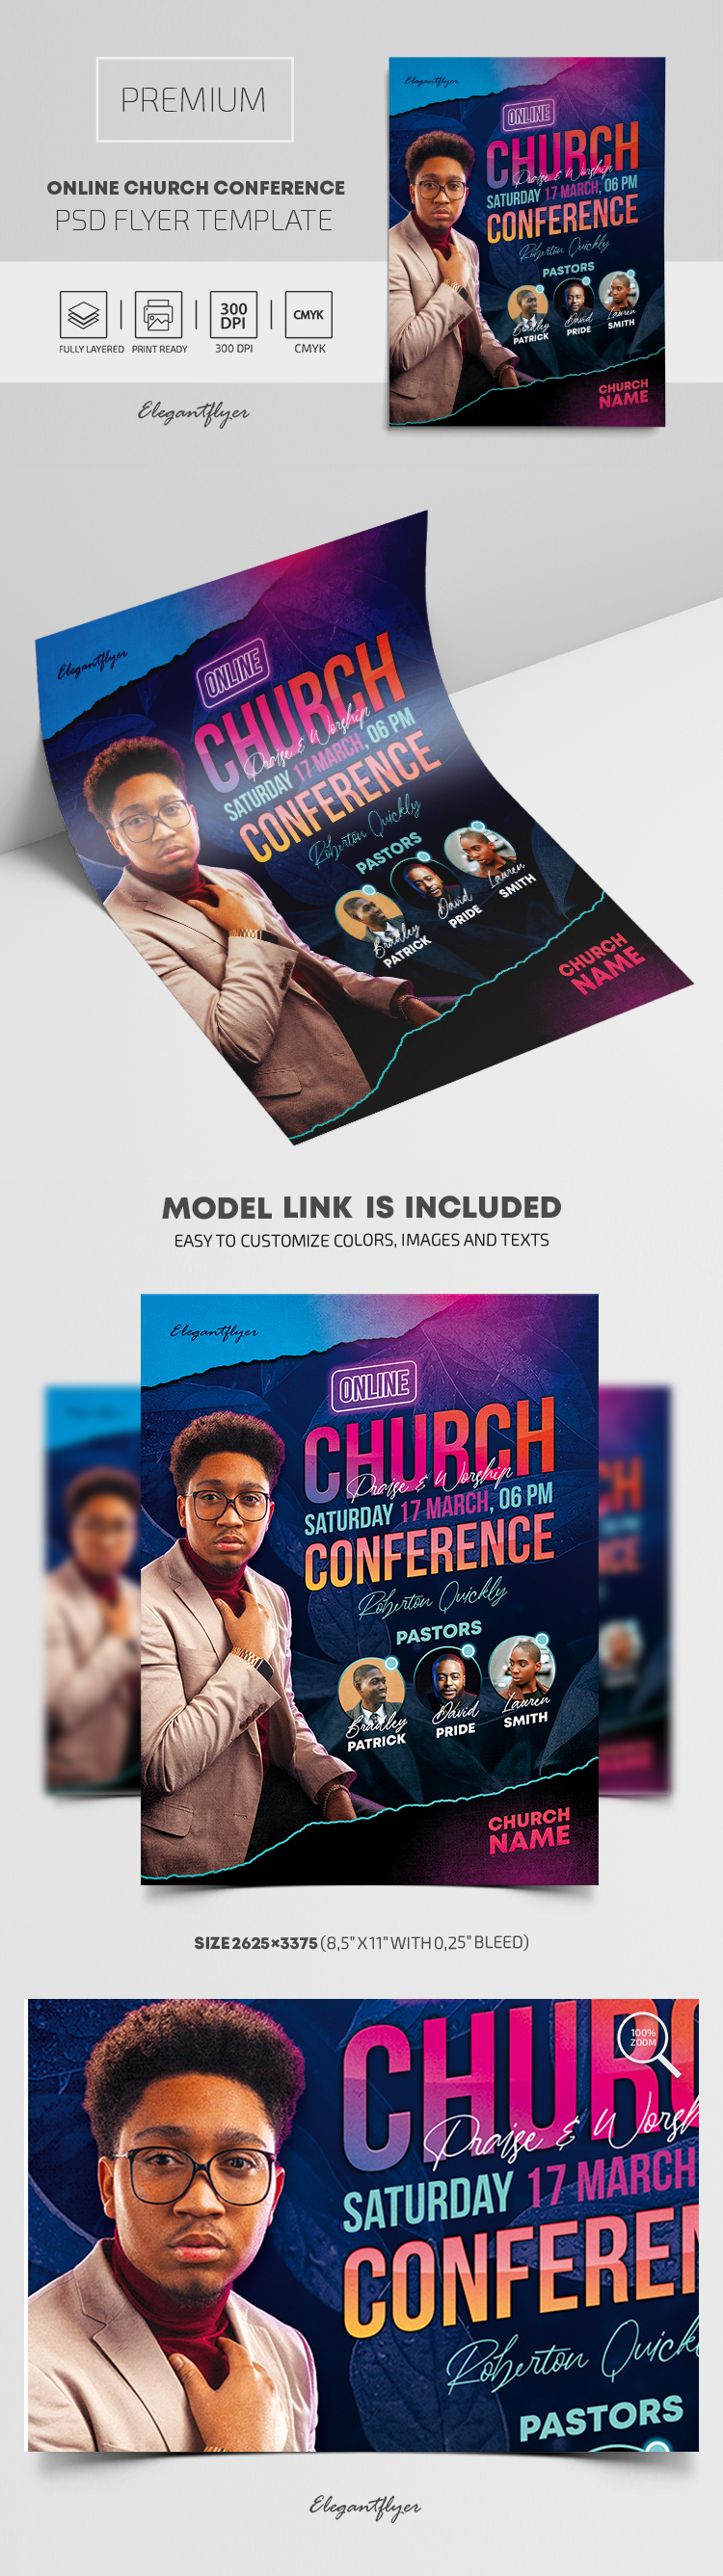 Online Church Conference – Premium PSD Flyer Template